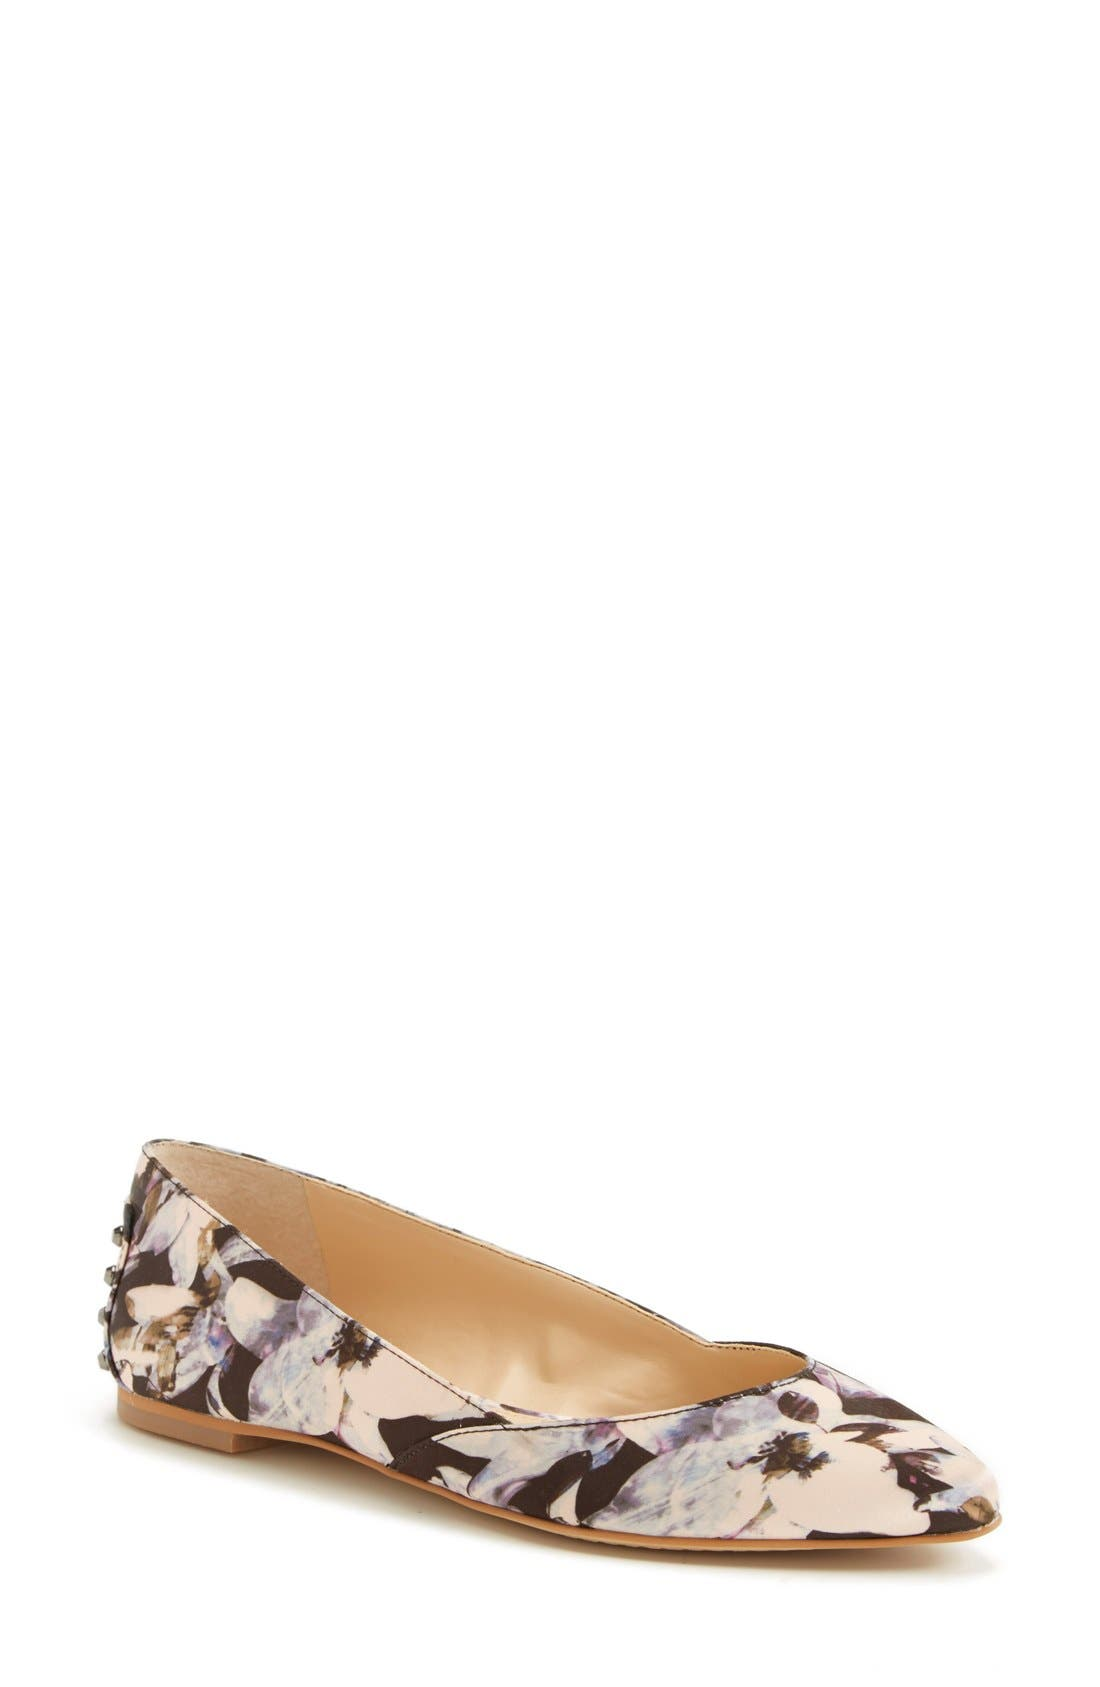 Main Image - Vince Camuto 'Alley' Studded Flat (Women)